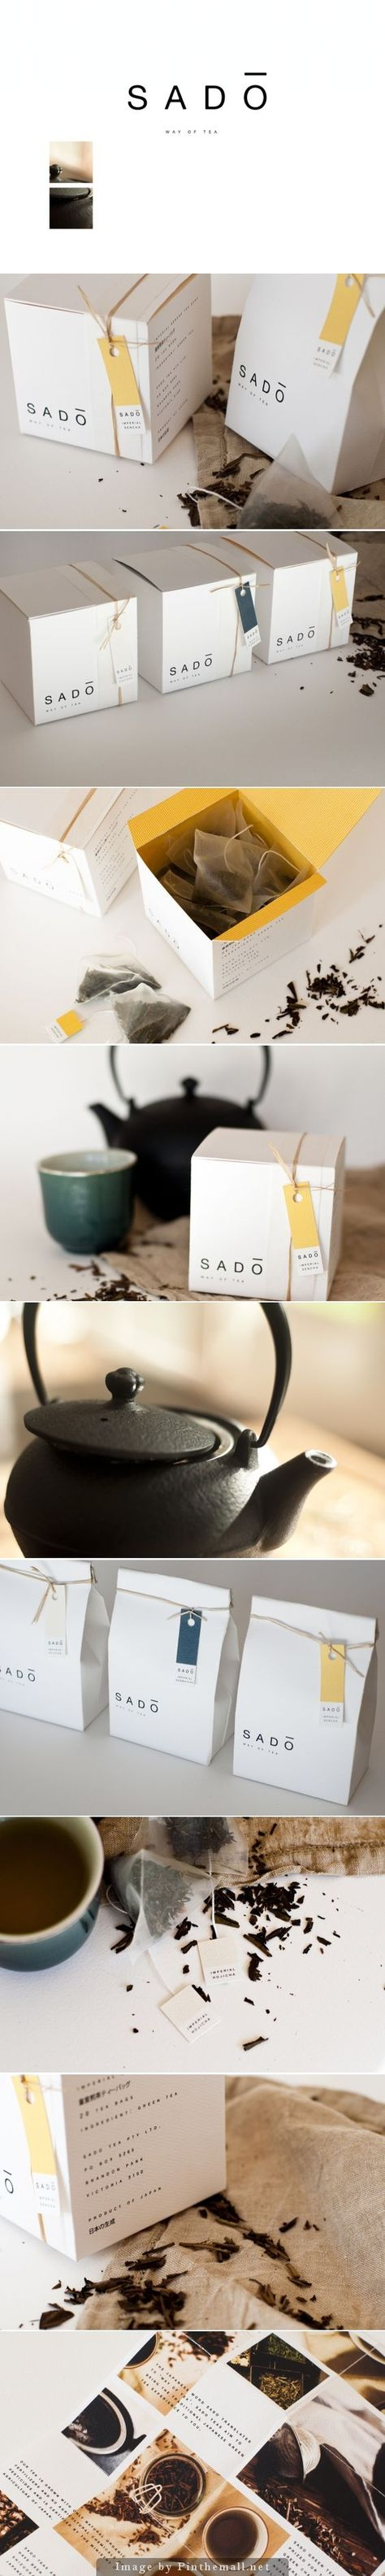 Got time time for some Sato Tea #packaging and design inspiration by Emma Goddard: